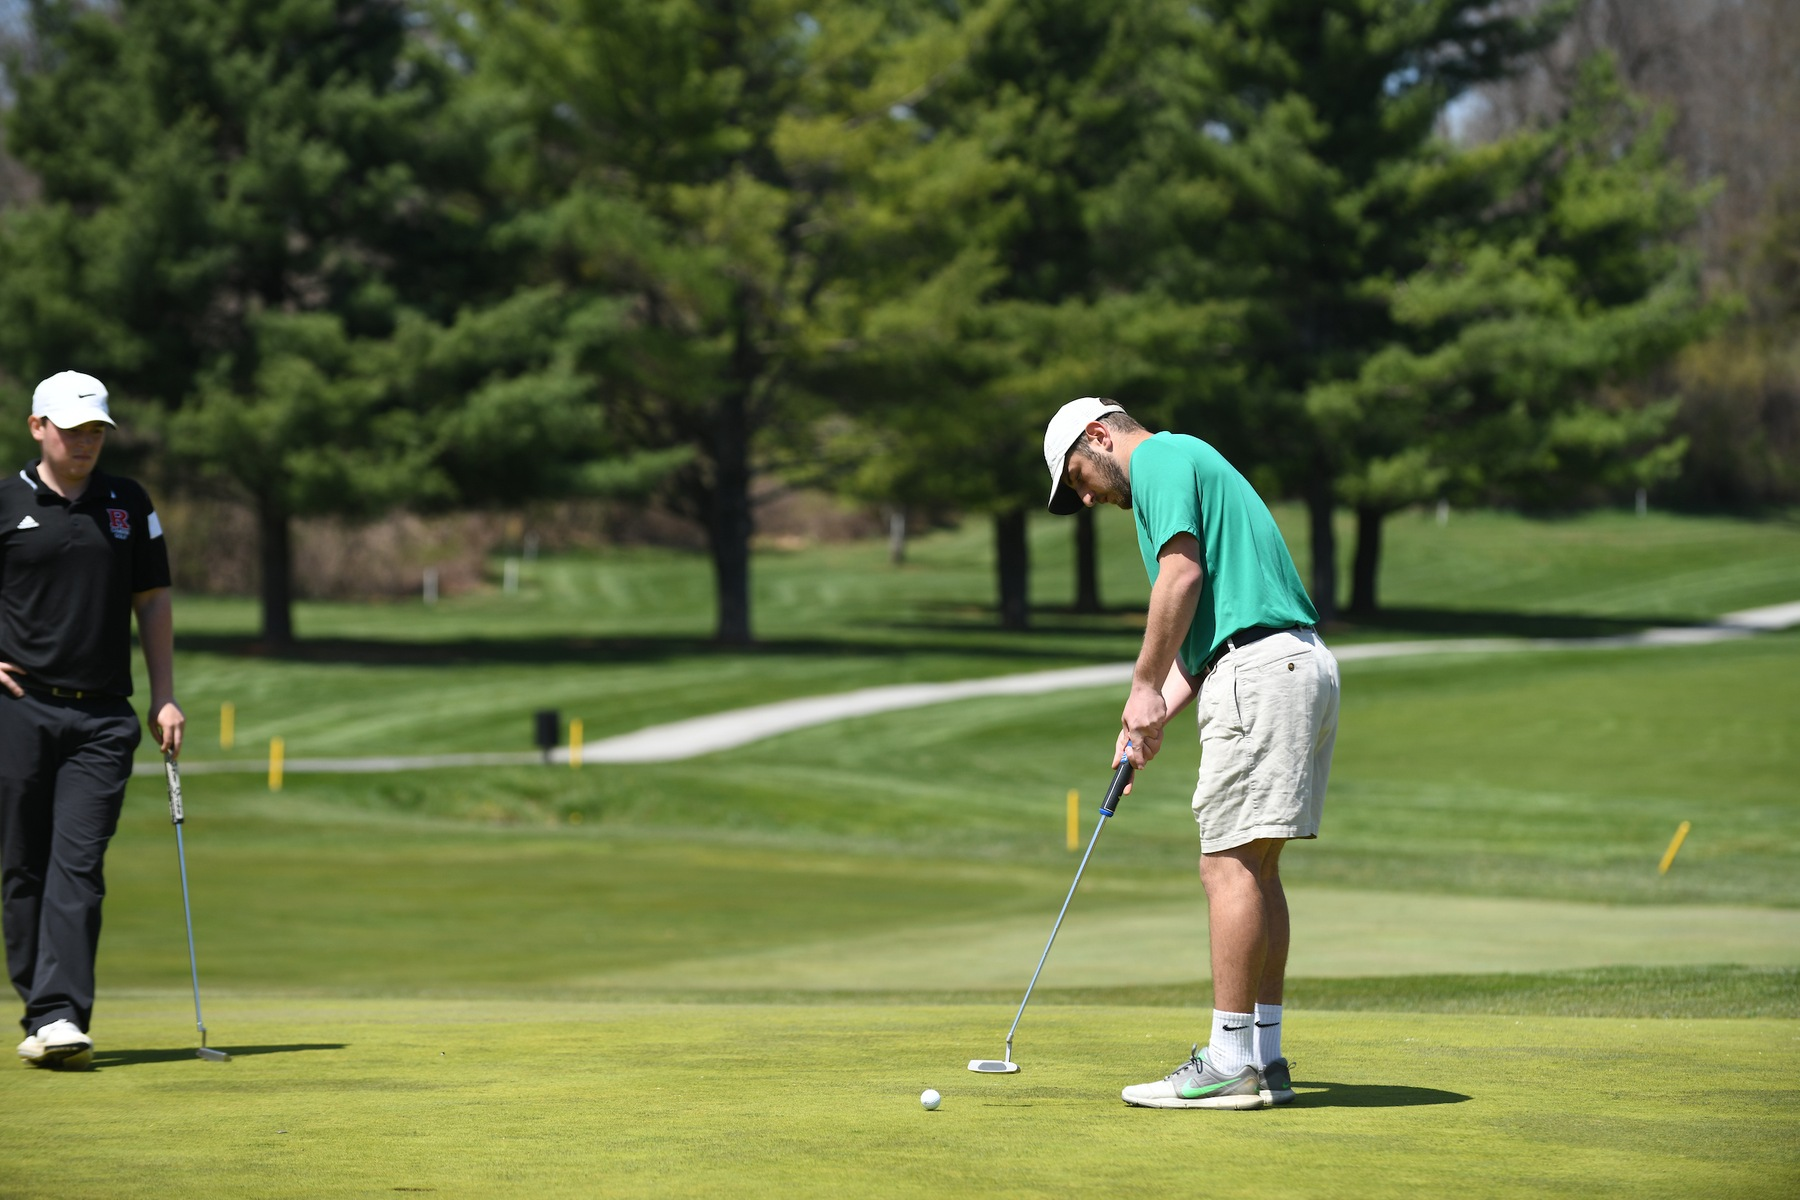 Men's Golf Opens Up Play at McDaniel Spring Invite